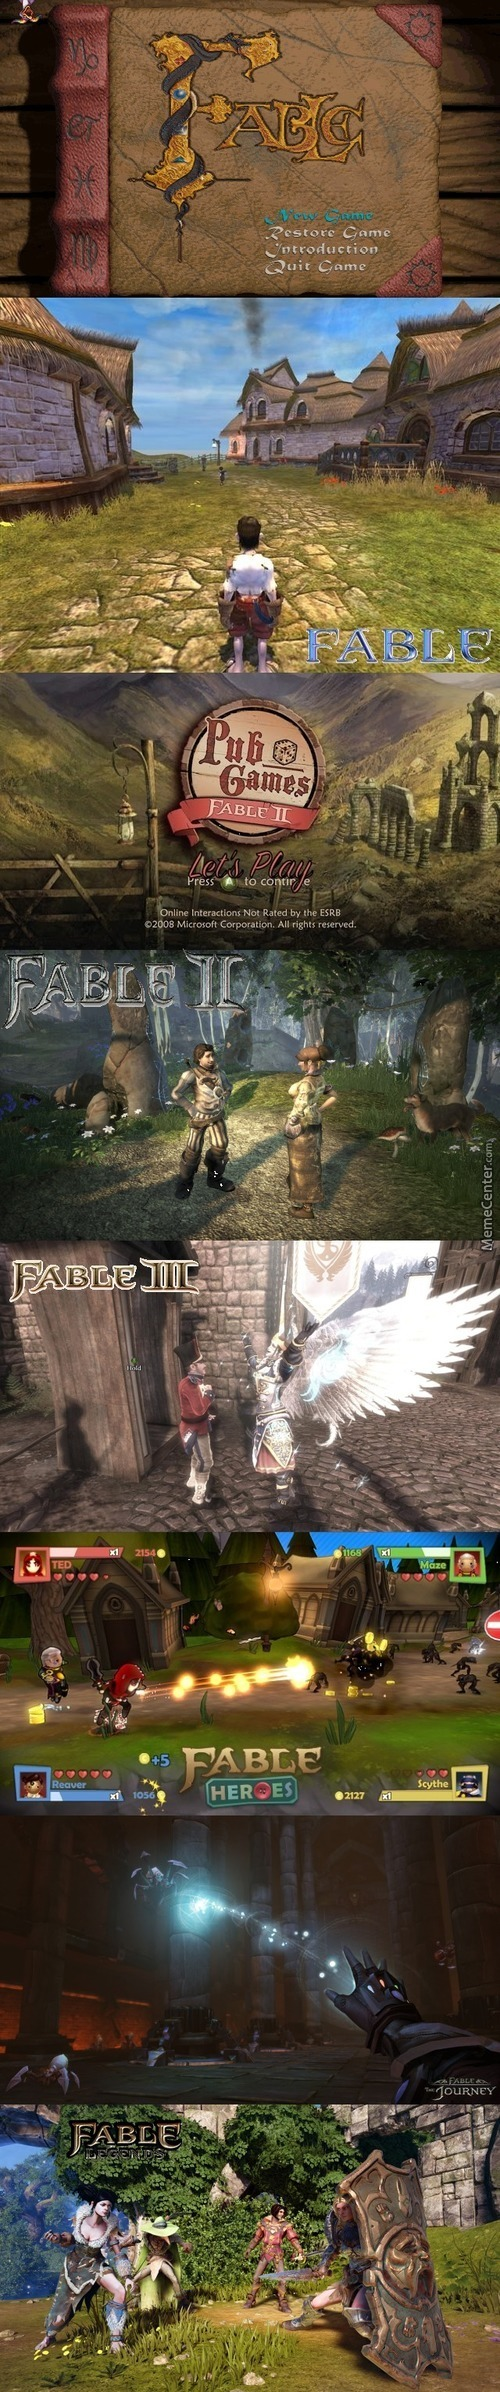 Fable Ii Memes  Best Collection of Funny Fable Ii Pictures